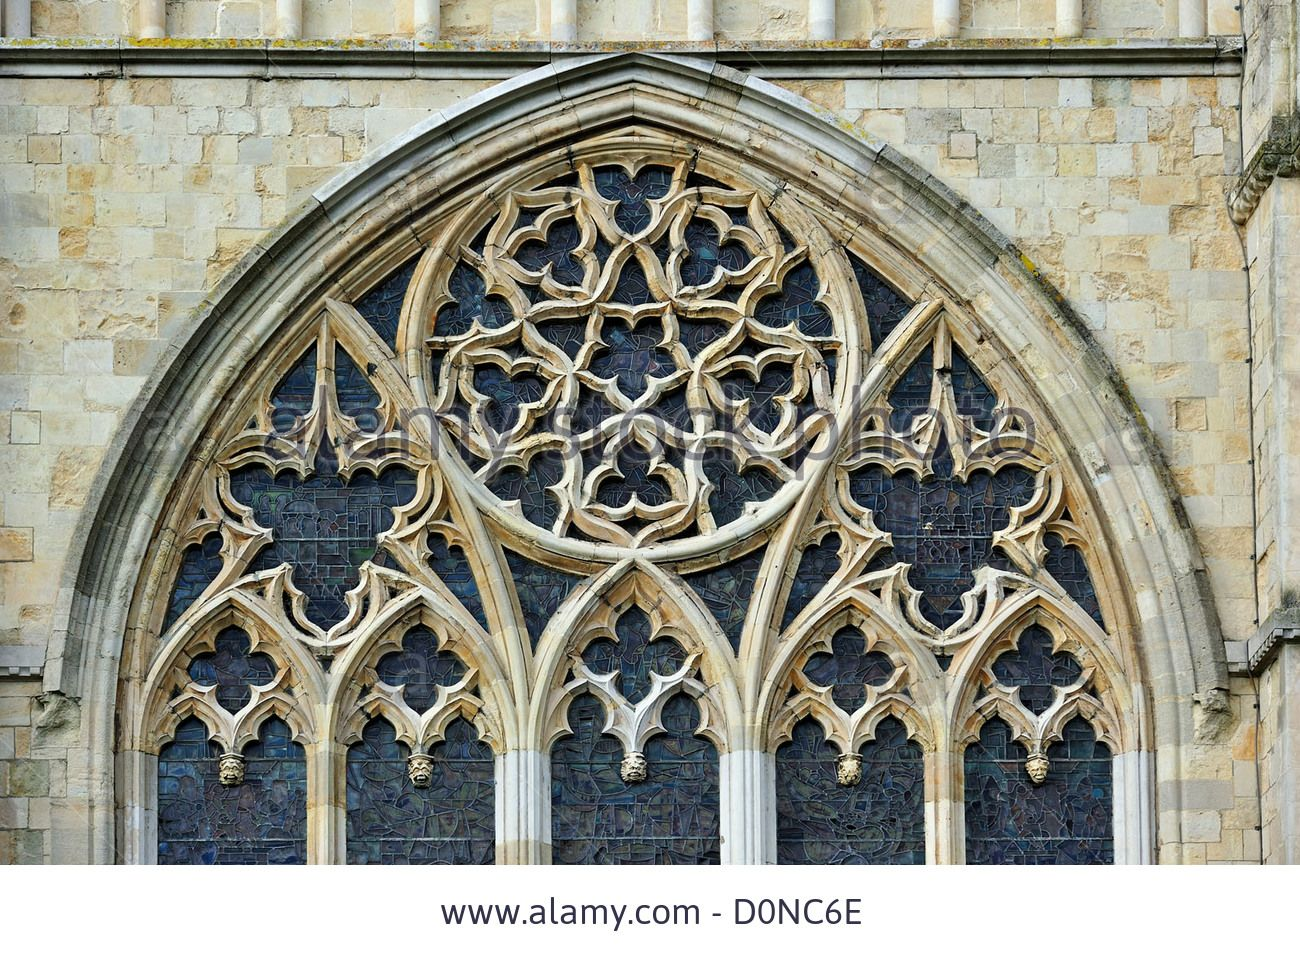 Bar Tracery In Gothic Window Of The Canterbury Cathedral Medieval D0NC6E JPEG Image 1300 X 955 Pixels